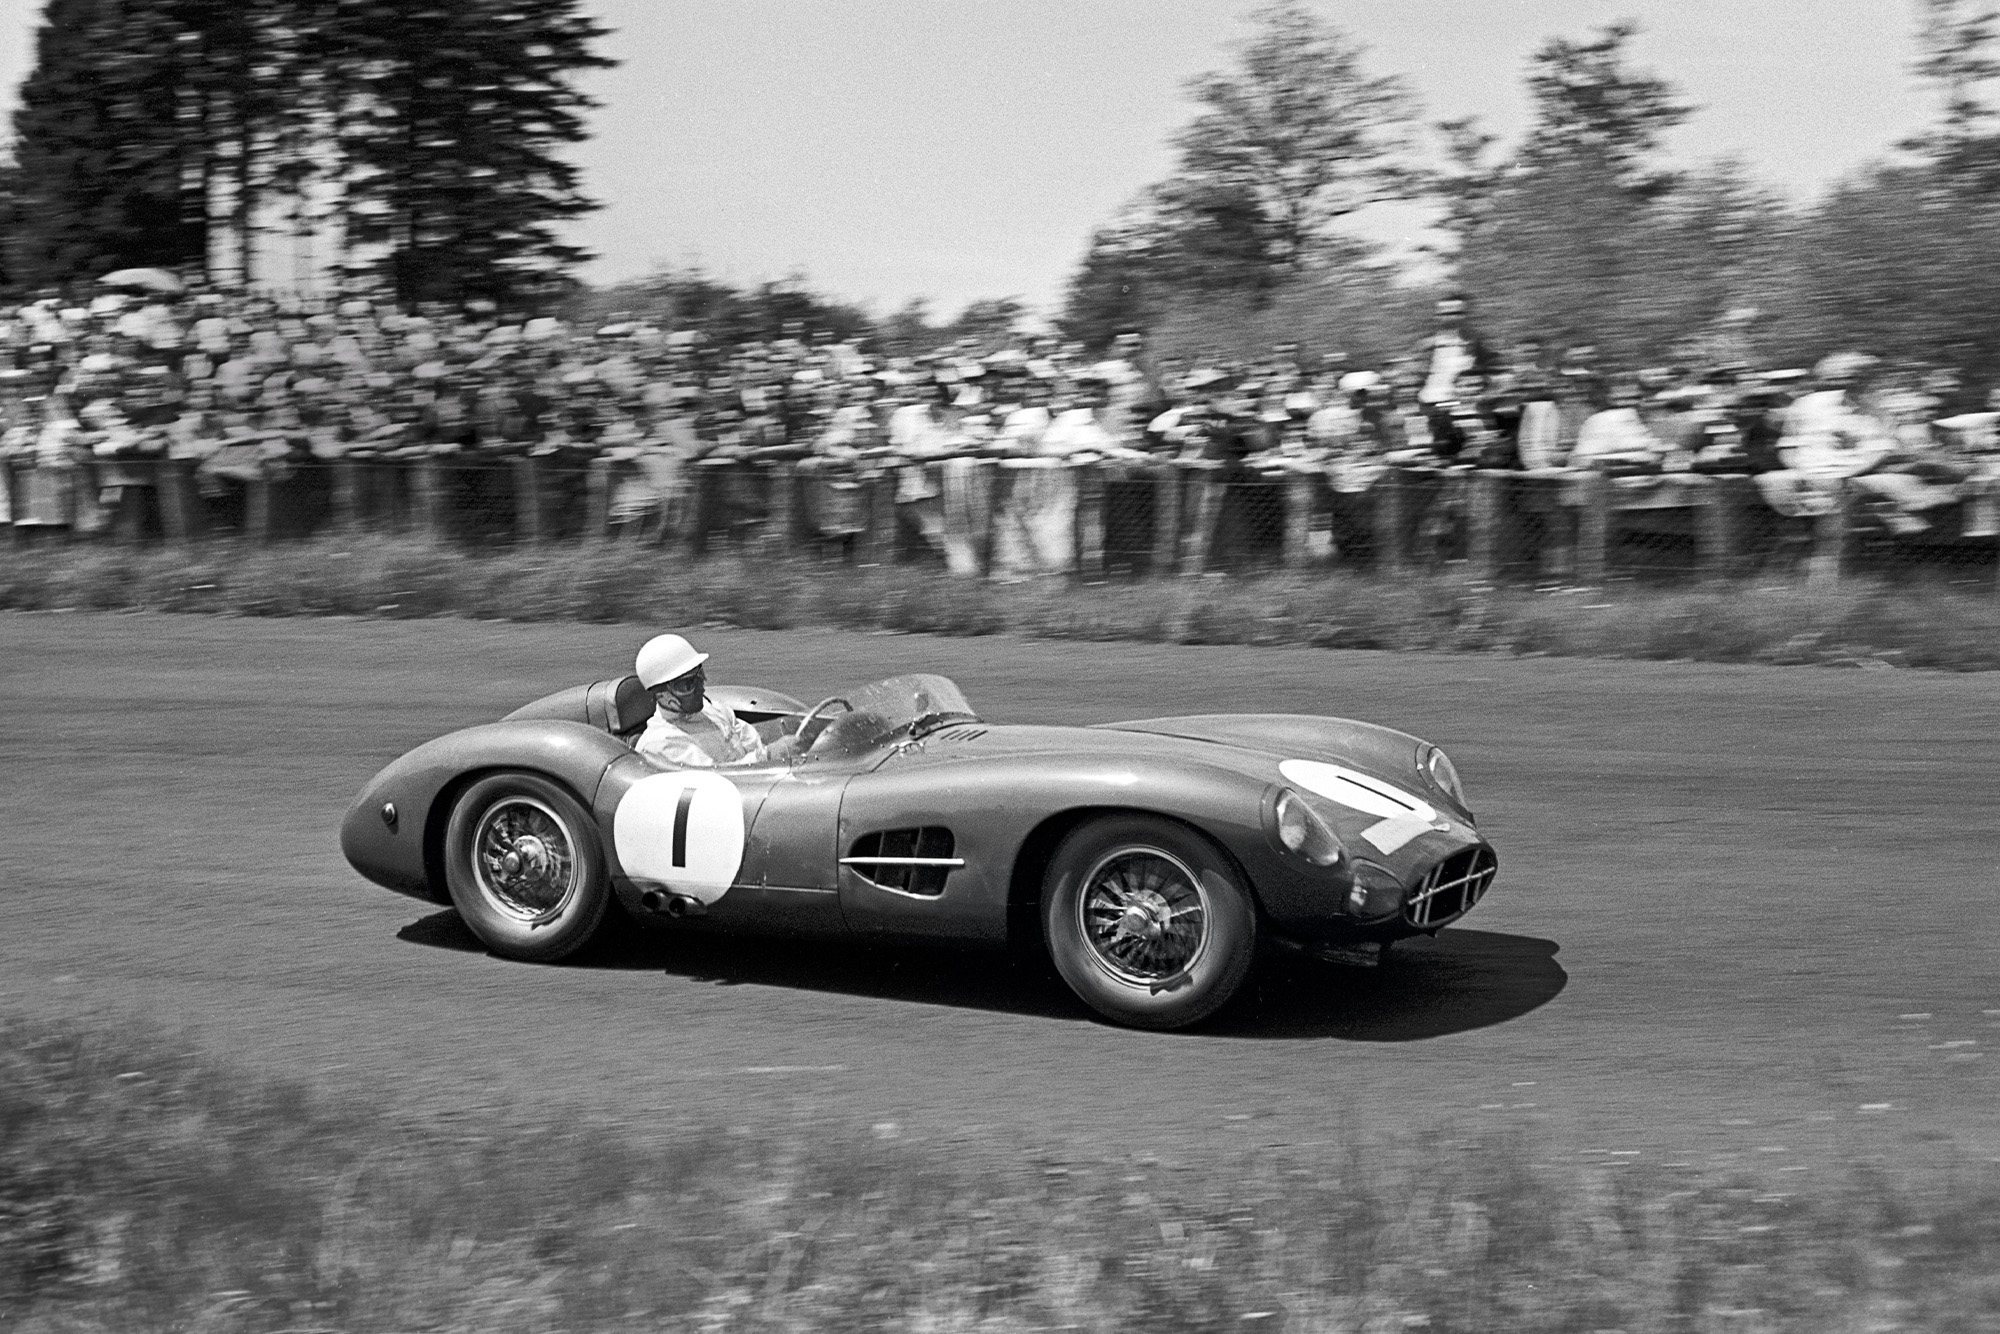 Stirling Moss in the Aston Martin DBR1 during the 1958 Nurburgring 1000km